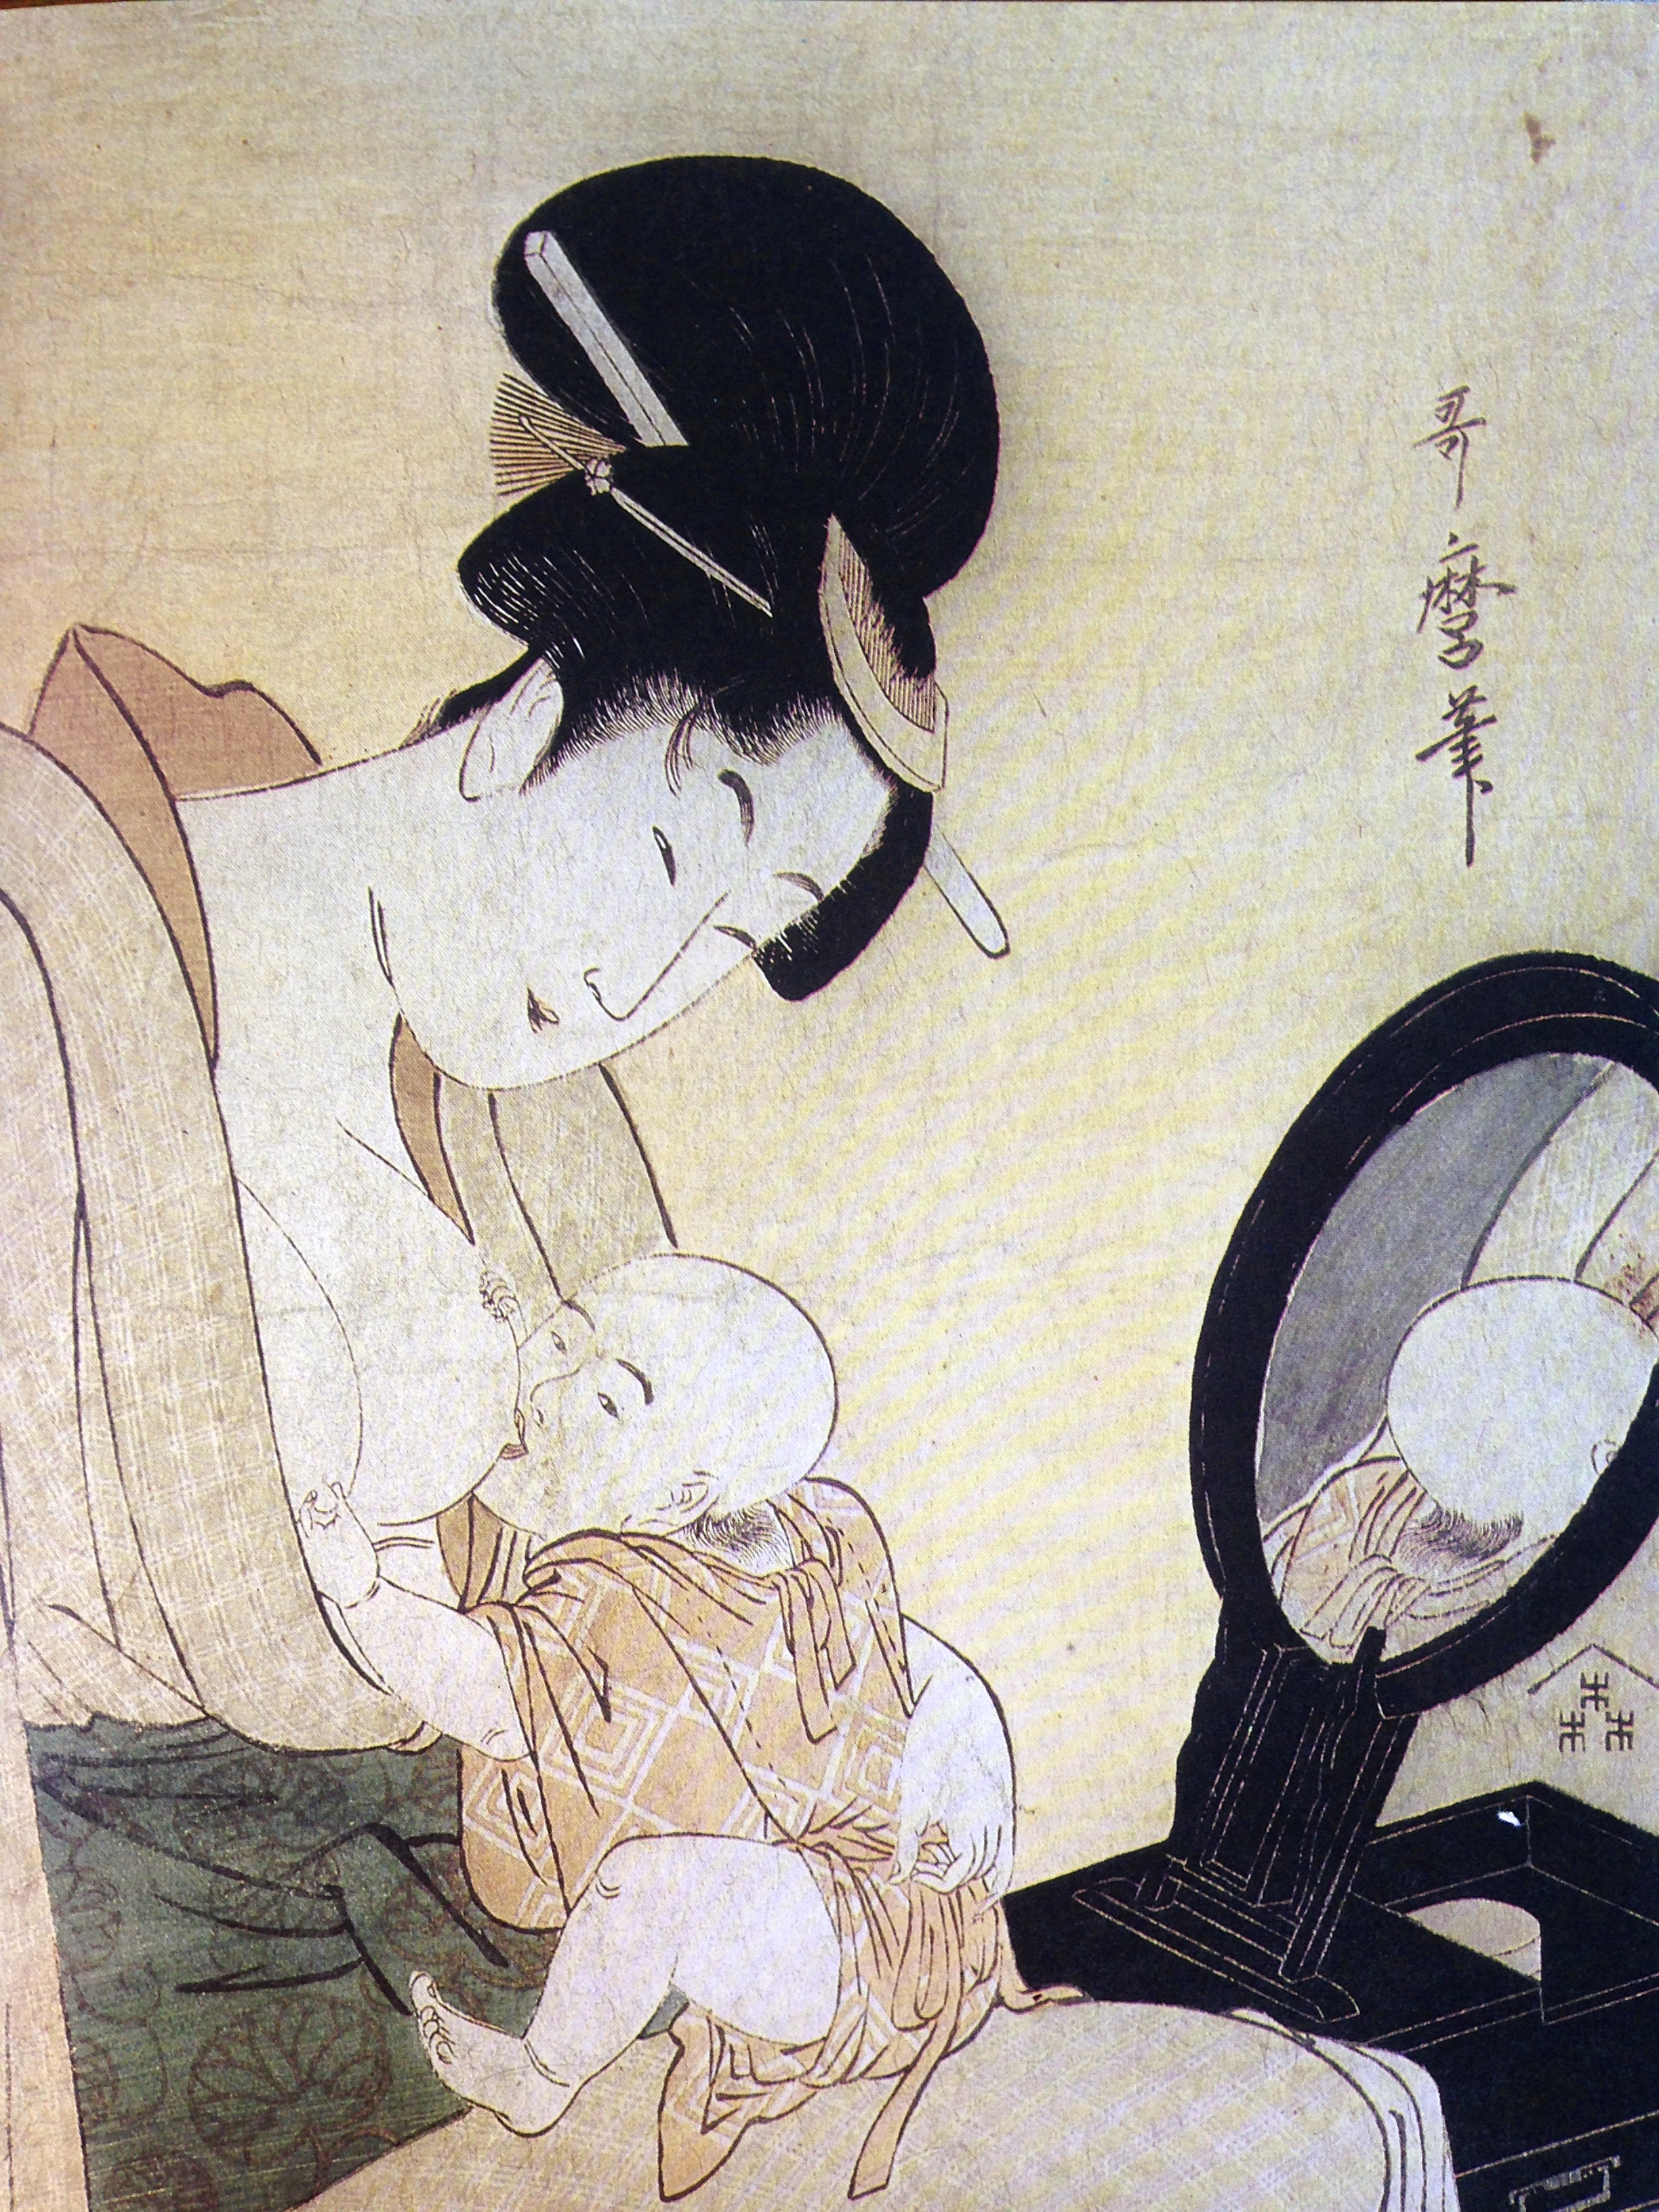 Utamao Breastfeeding - Breastfeeding images that normalise nursing